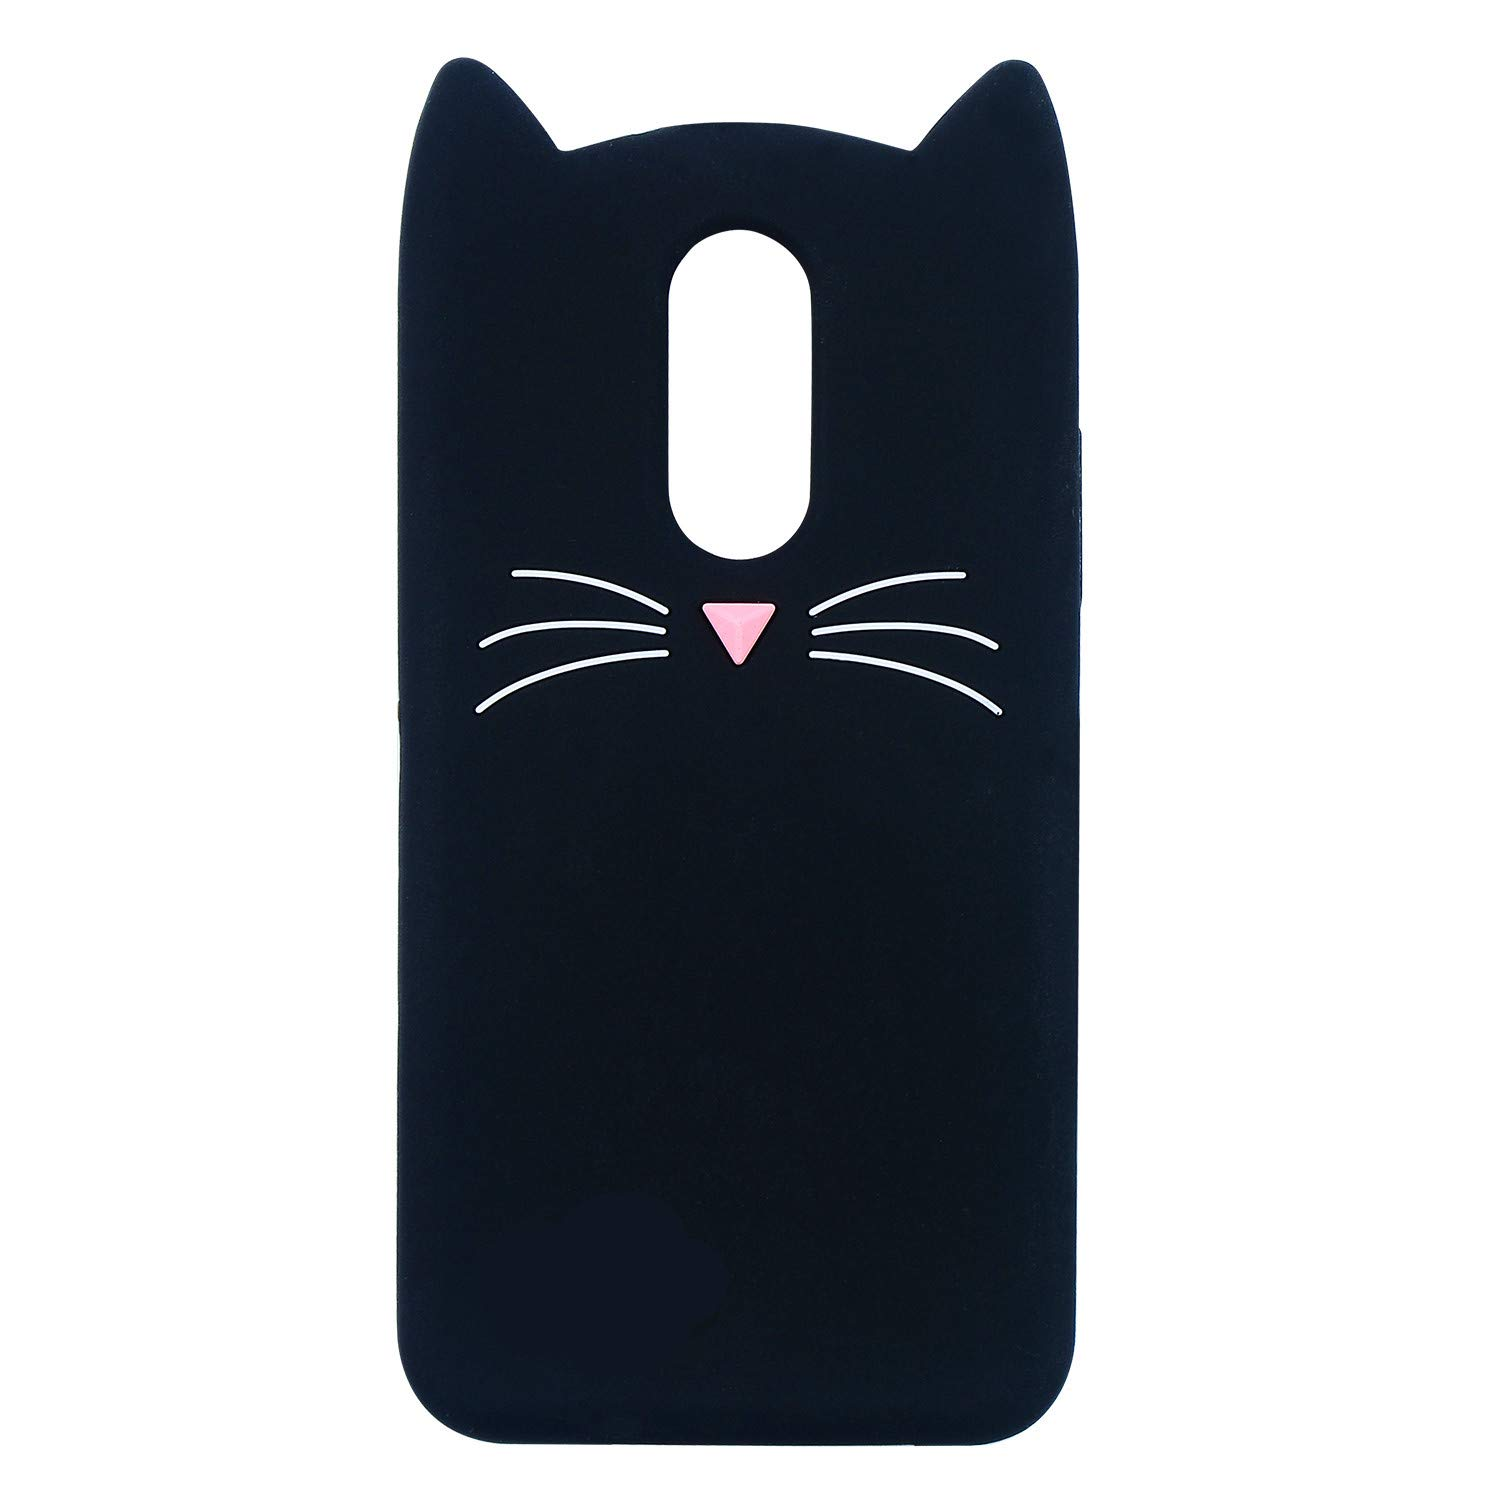 Joyleop Case for LG Stylo 4/LG Q Stylus,Cartoon Soft Silicone Cute 3D Fun Cool Cover,Kawaii Unique Kids Girls Animal Character Rubber Skin Shockproof Protector Cases for LG Stylo 4 Plus Black Cat